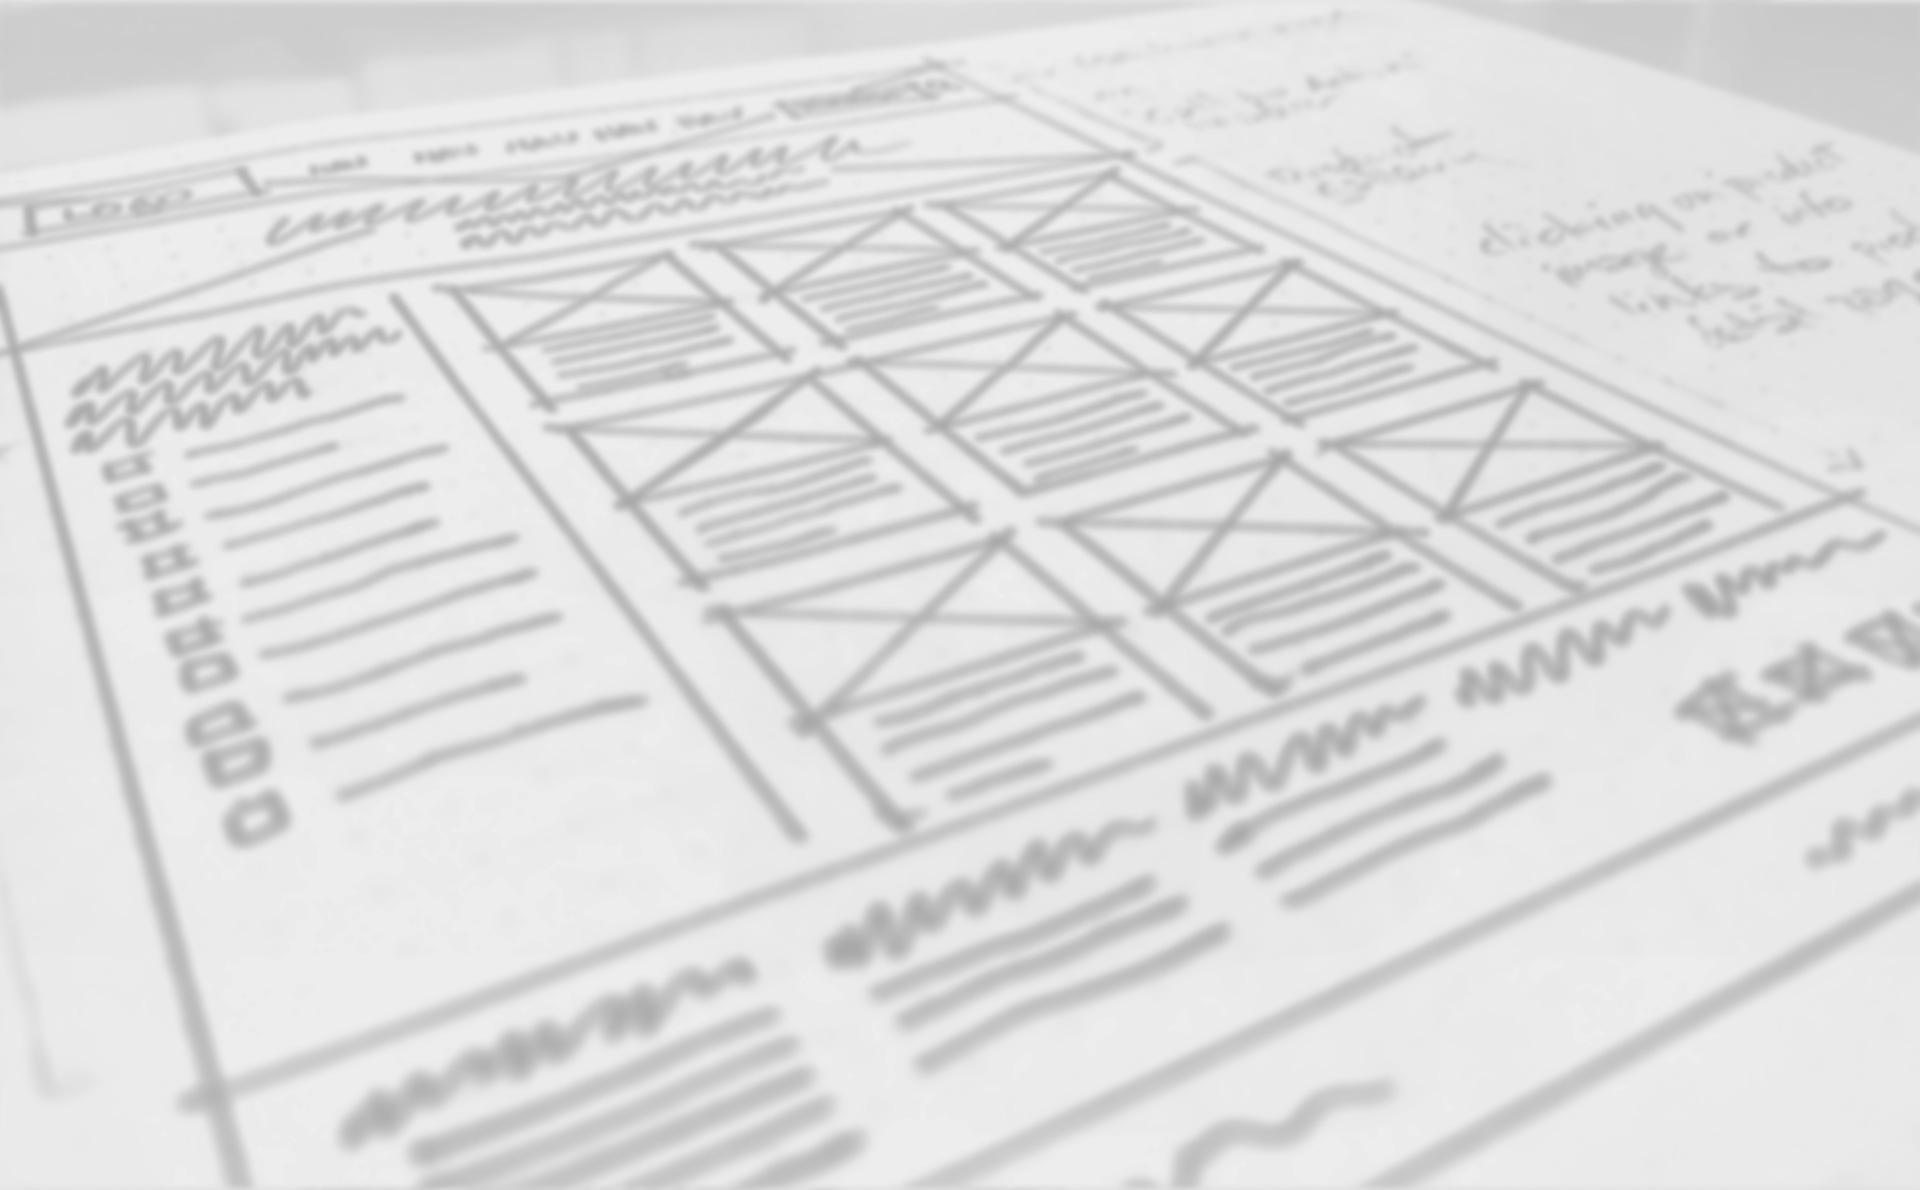 Hand-rendered website wireframe